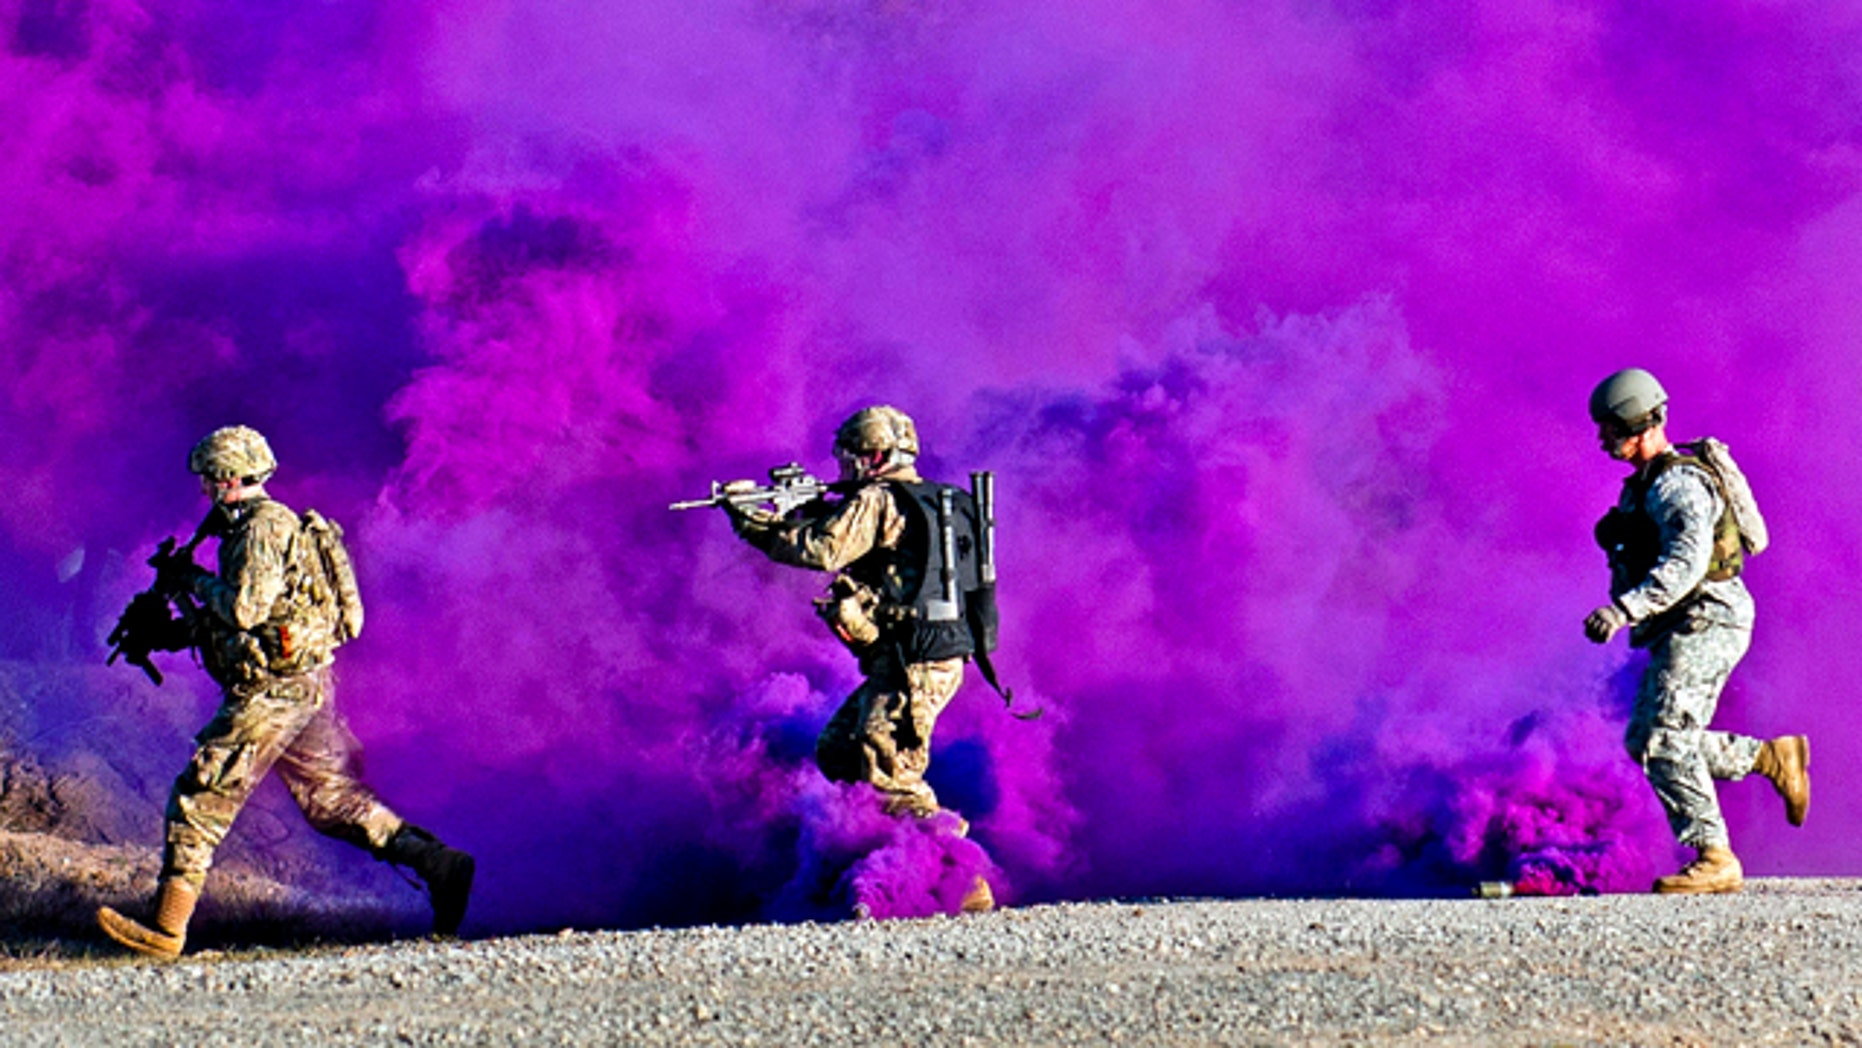 Jan. 14, 2012: Paratroopers run through a smokescreen during a live-fire exercise at the Joint Readiness Training Center, Fort Polk, La. Hight-tech undergarments will let the Army monitor warfighters of the future -- alerting a command center to the exact status of men on the ground.